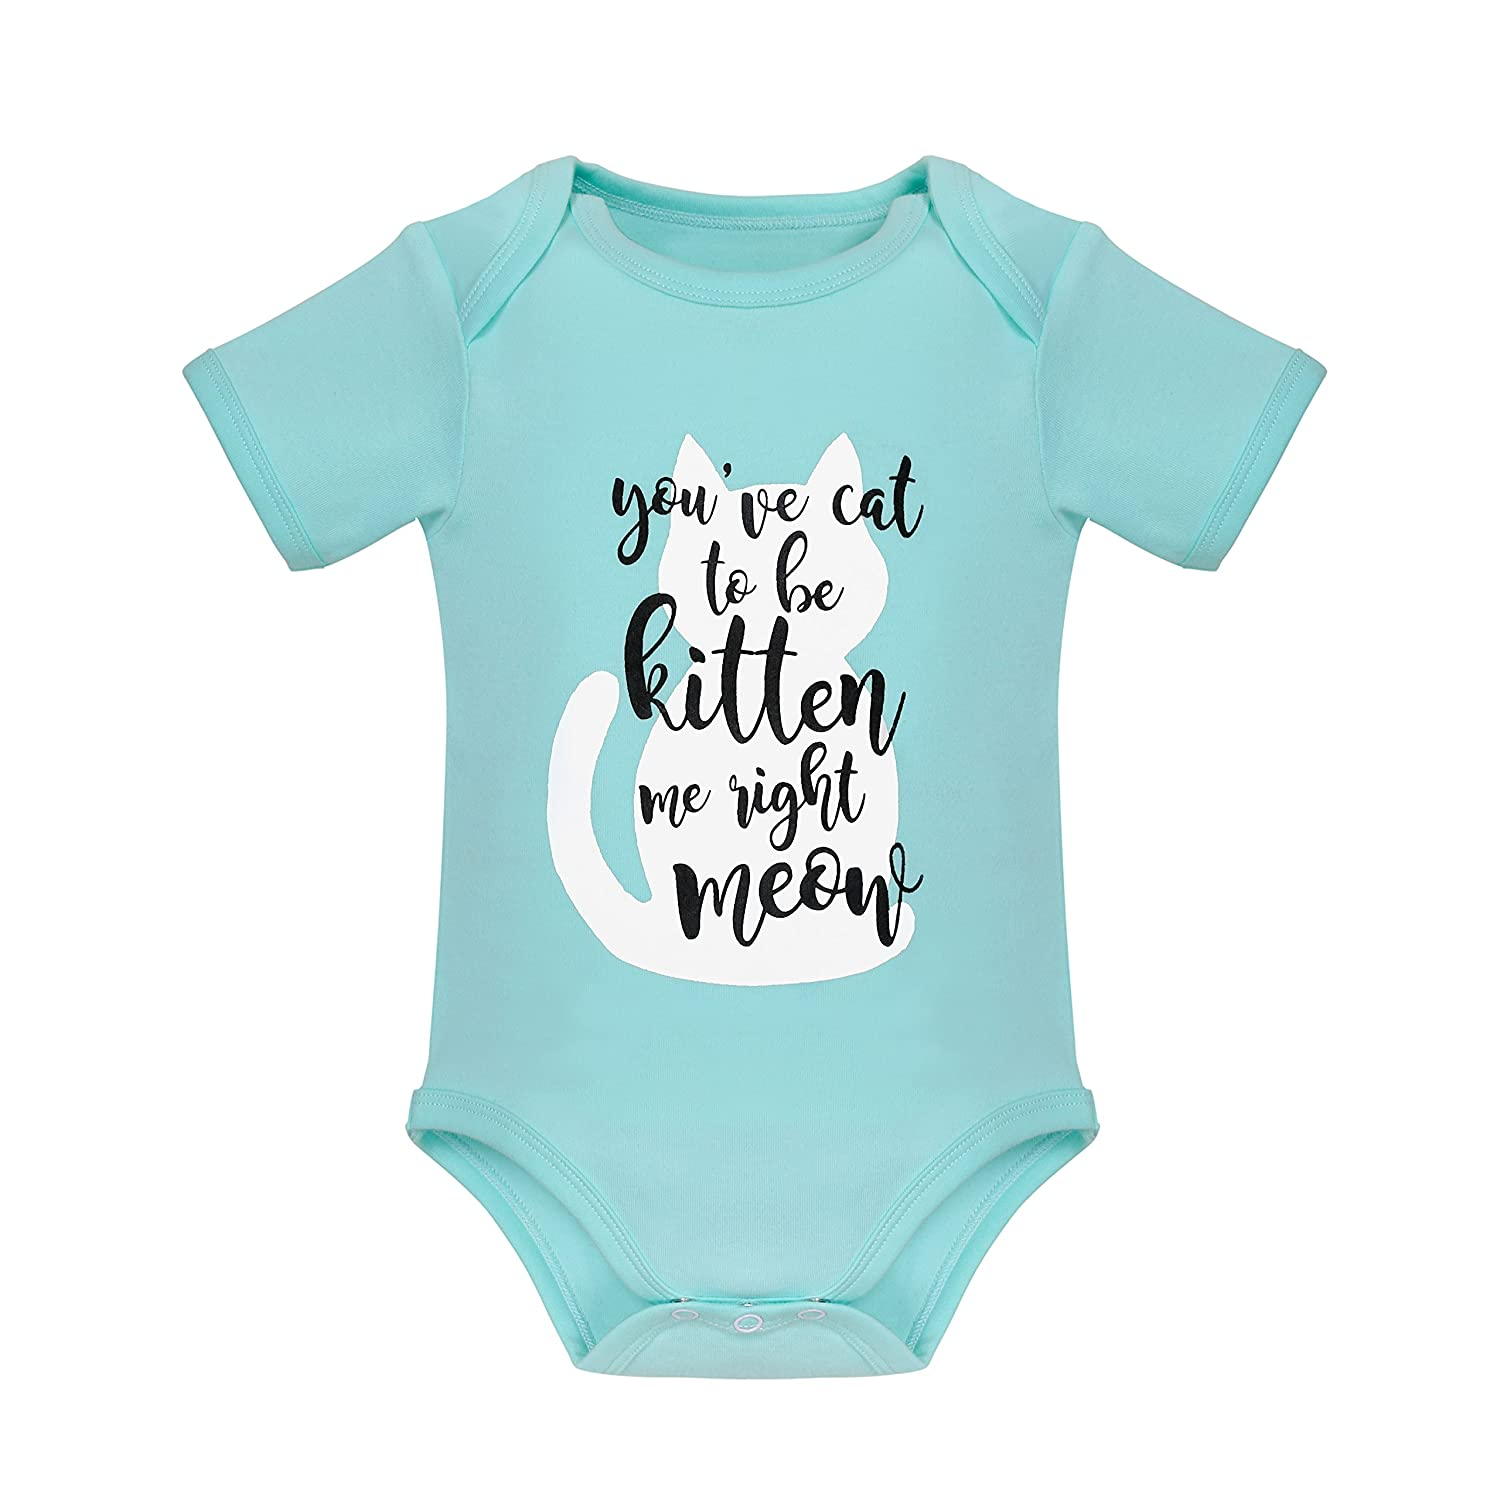 BABY GIRL,BOY,MUMMY /& I LOVE CATS BABY VEST,BODYSUIT,ROMPER,BABYGROW GIFT CUTE